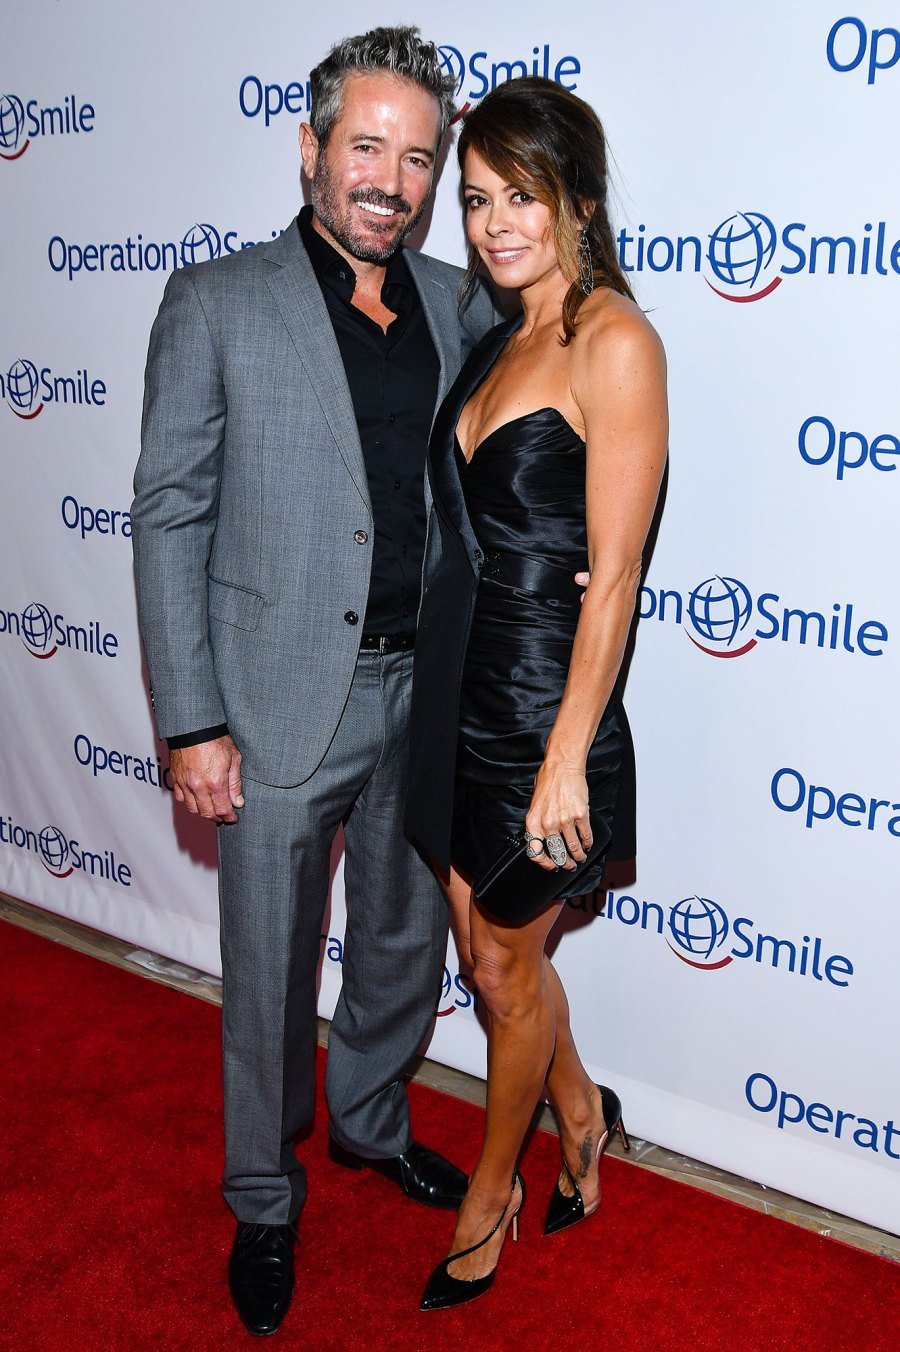 Scott Rigsby and Brooke Burke Red Carpet Debut